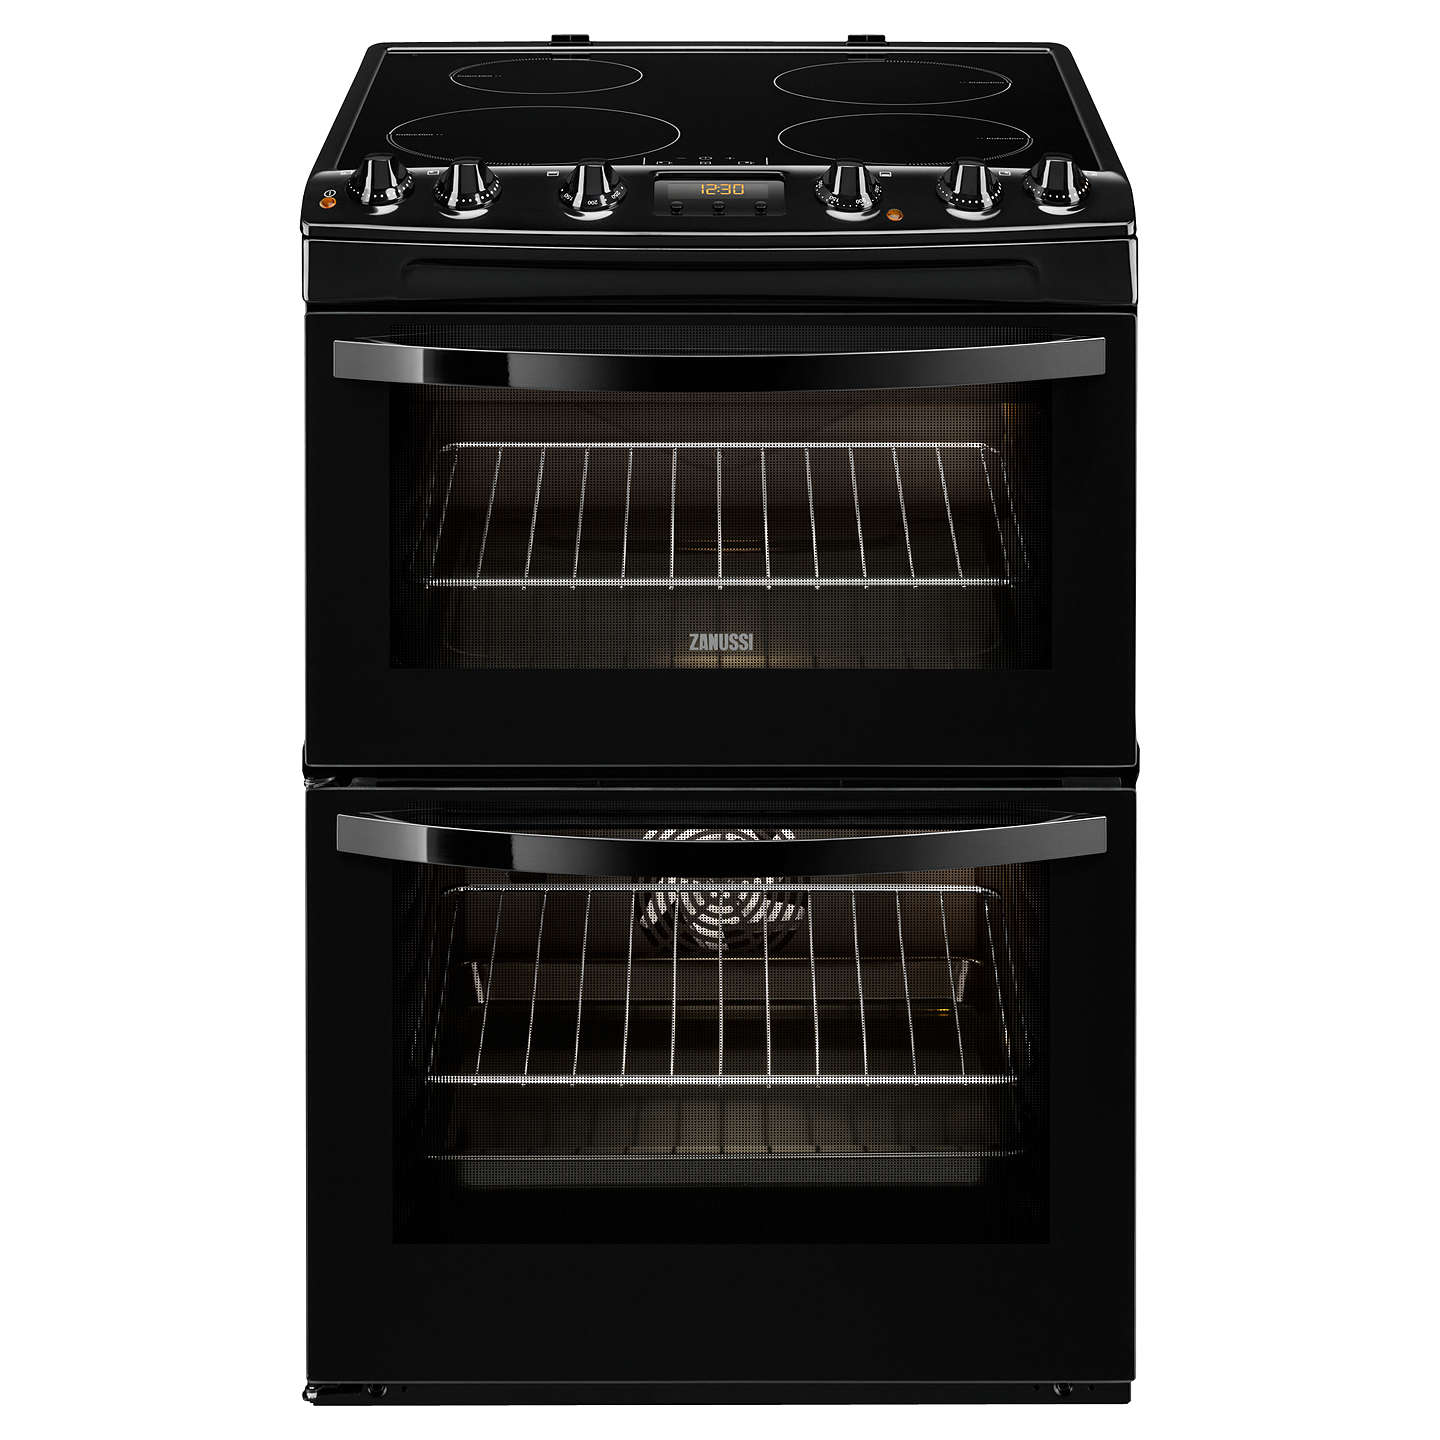 BuyZanussi ZCI68300BA Induction Hob Electric Cooker, Black Online at johnlewis.com